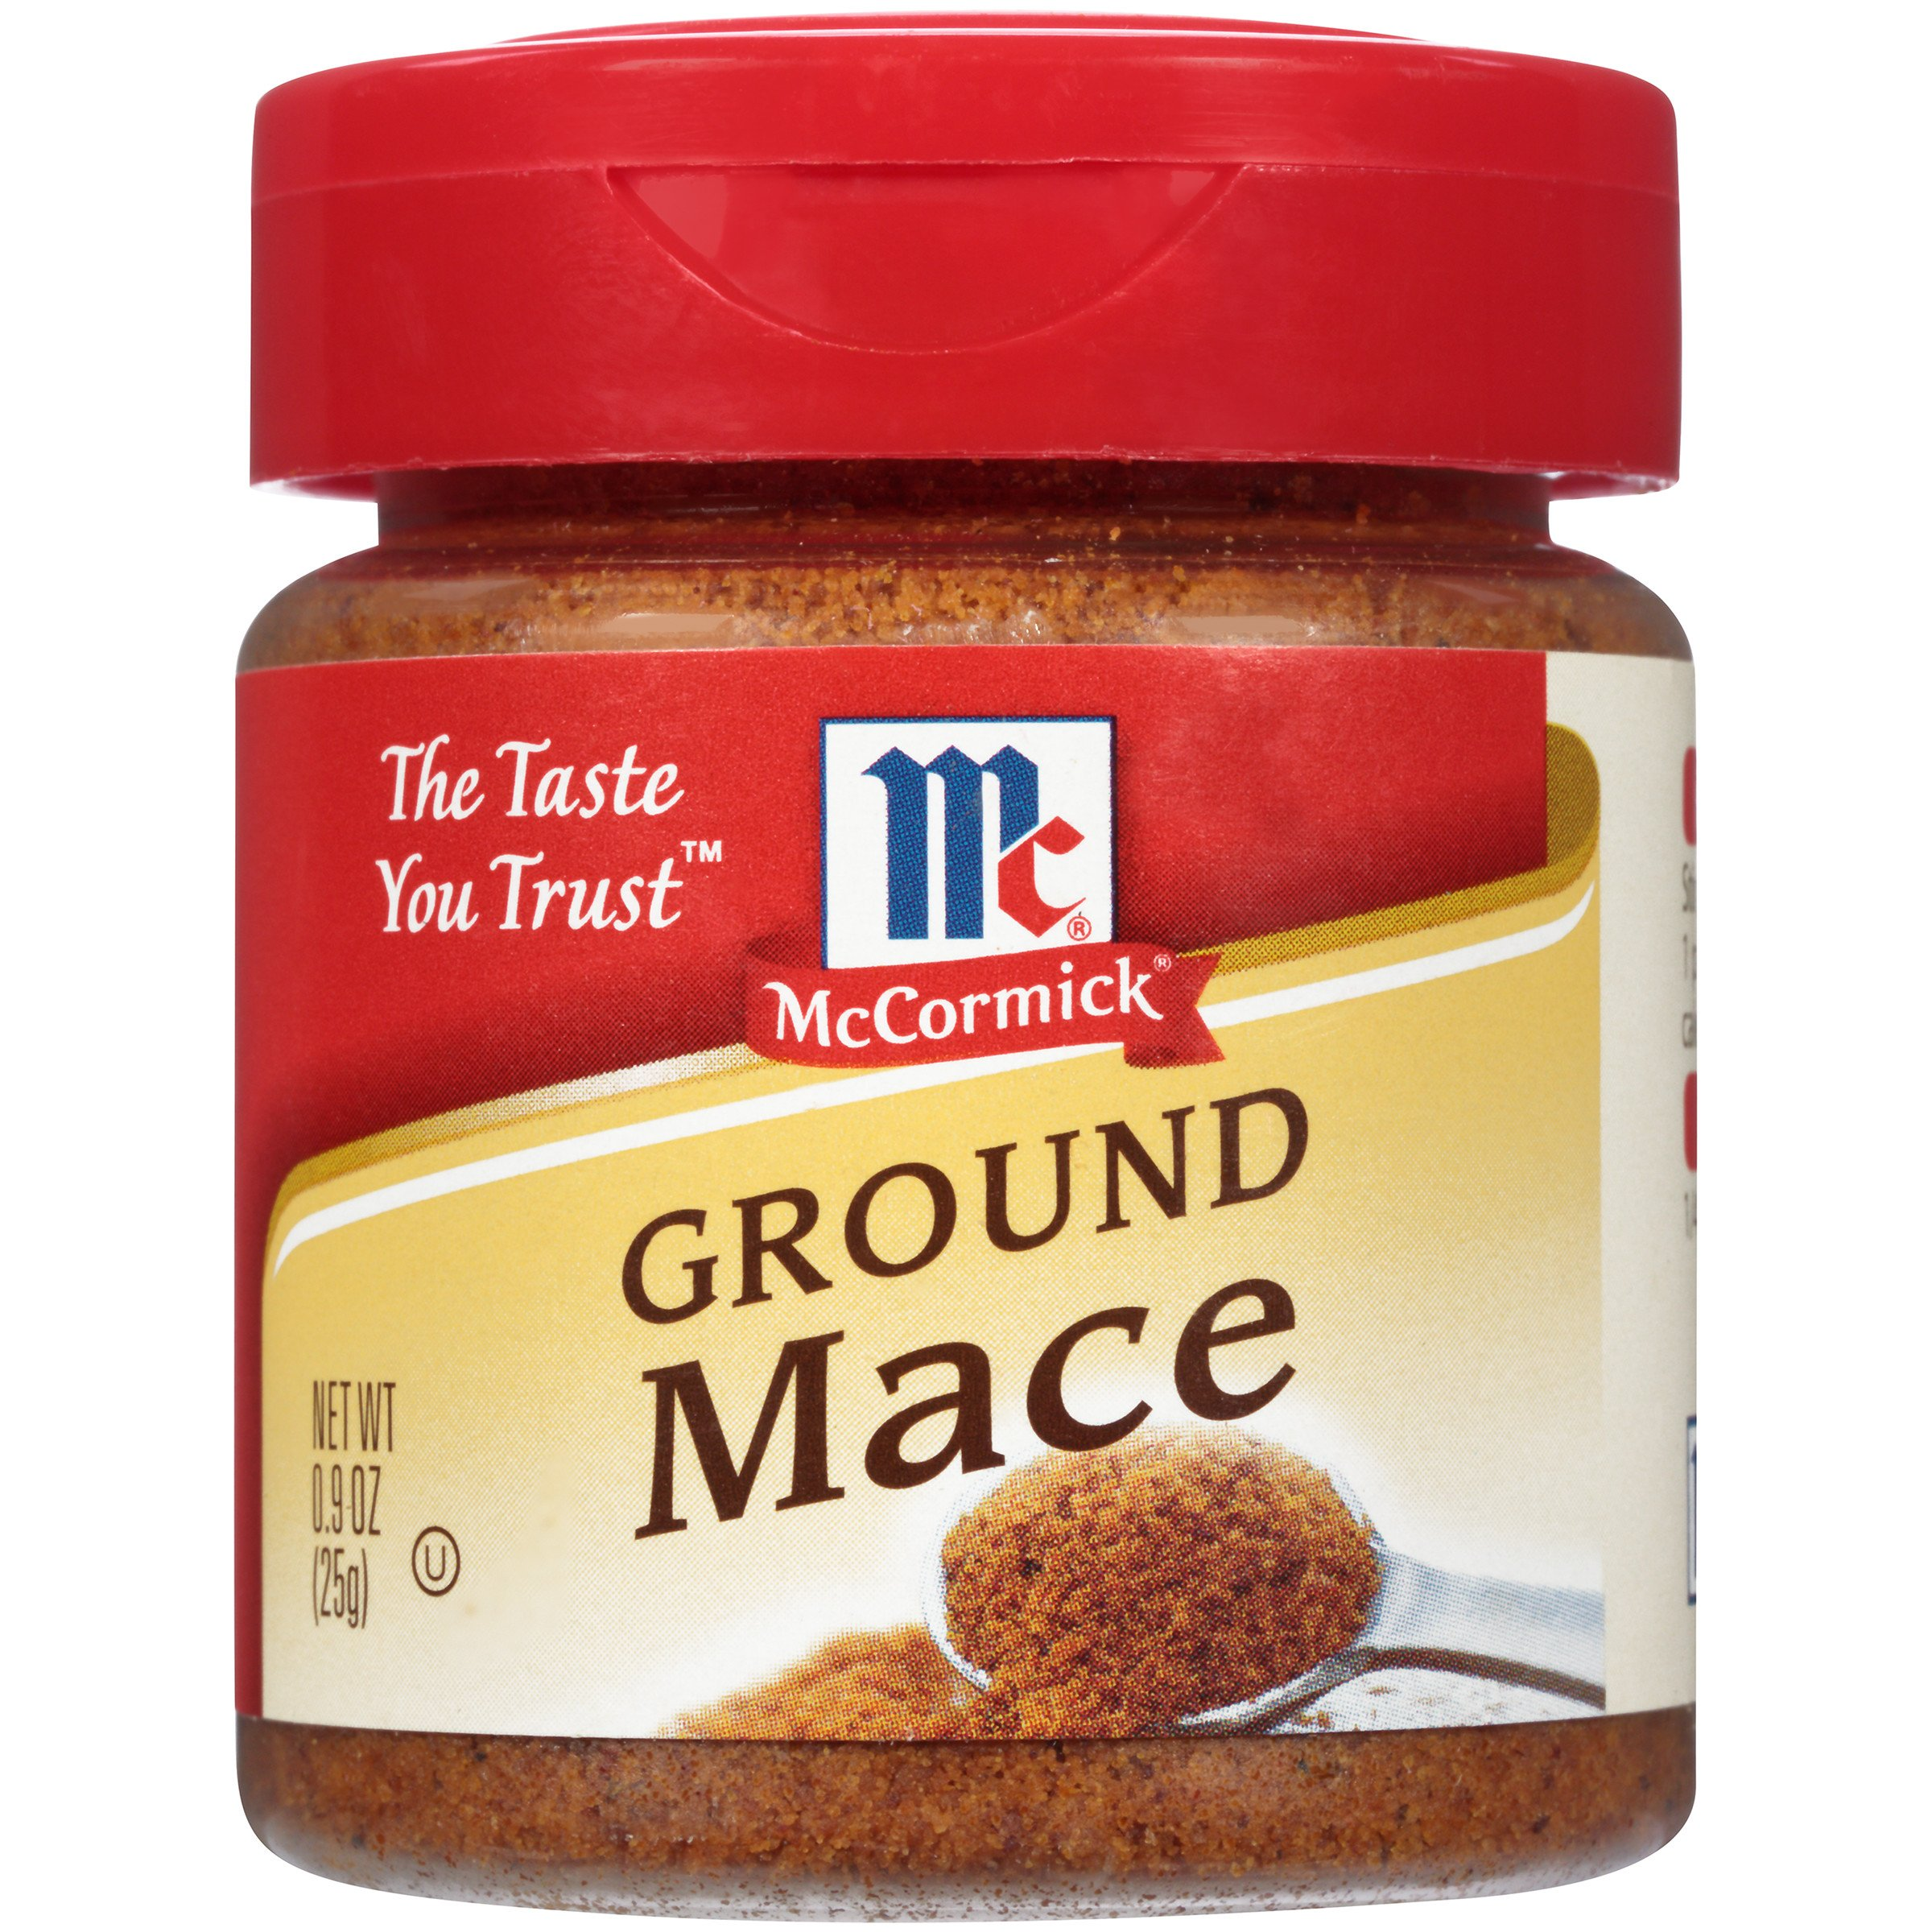 McCormick Ground Mace, 0.9 oz